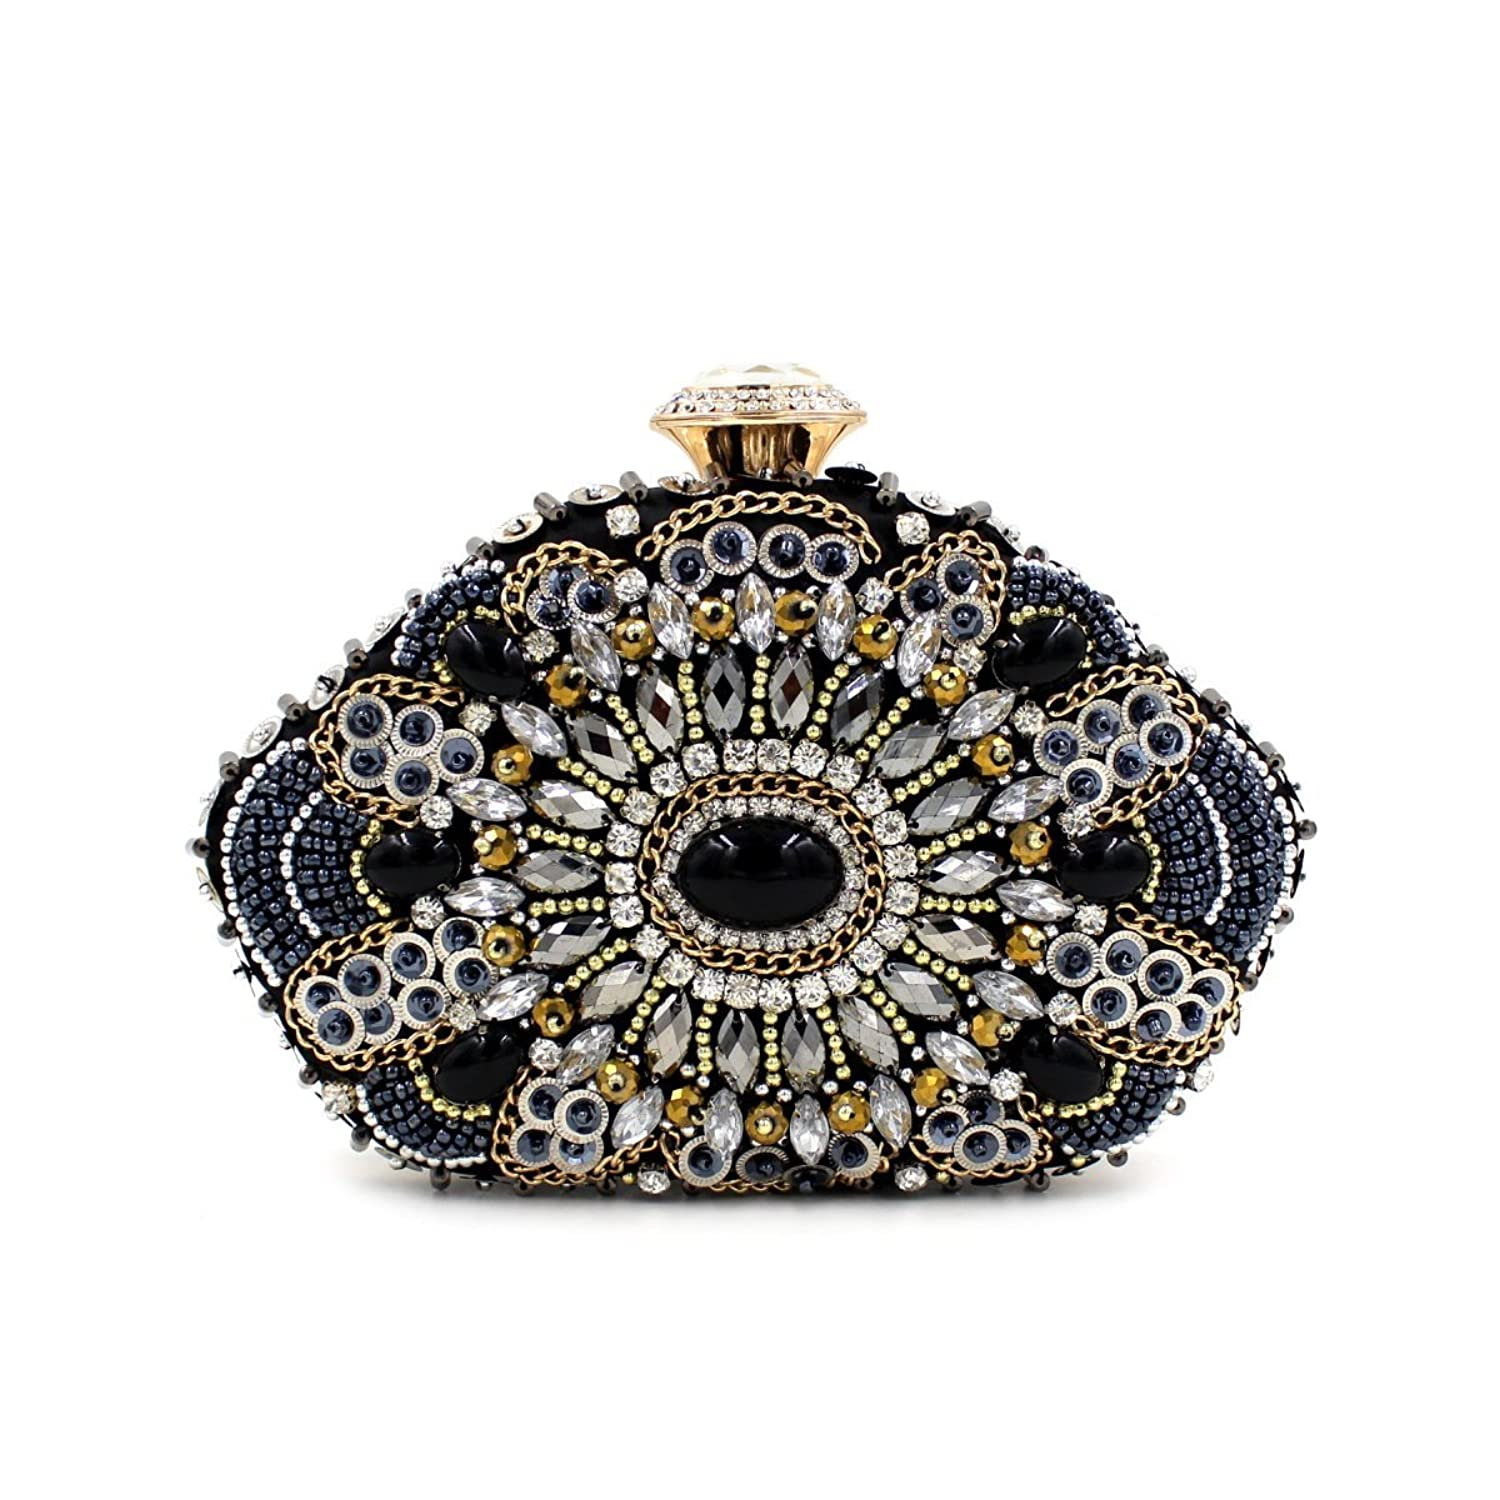 Flada Women Beaded Bag Black Fashion Clutch Bag Leisure Handbag